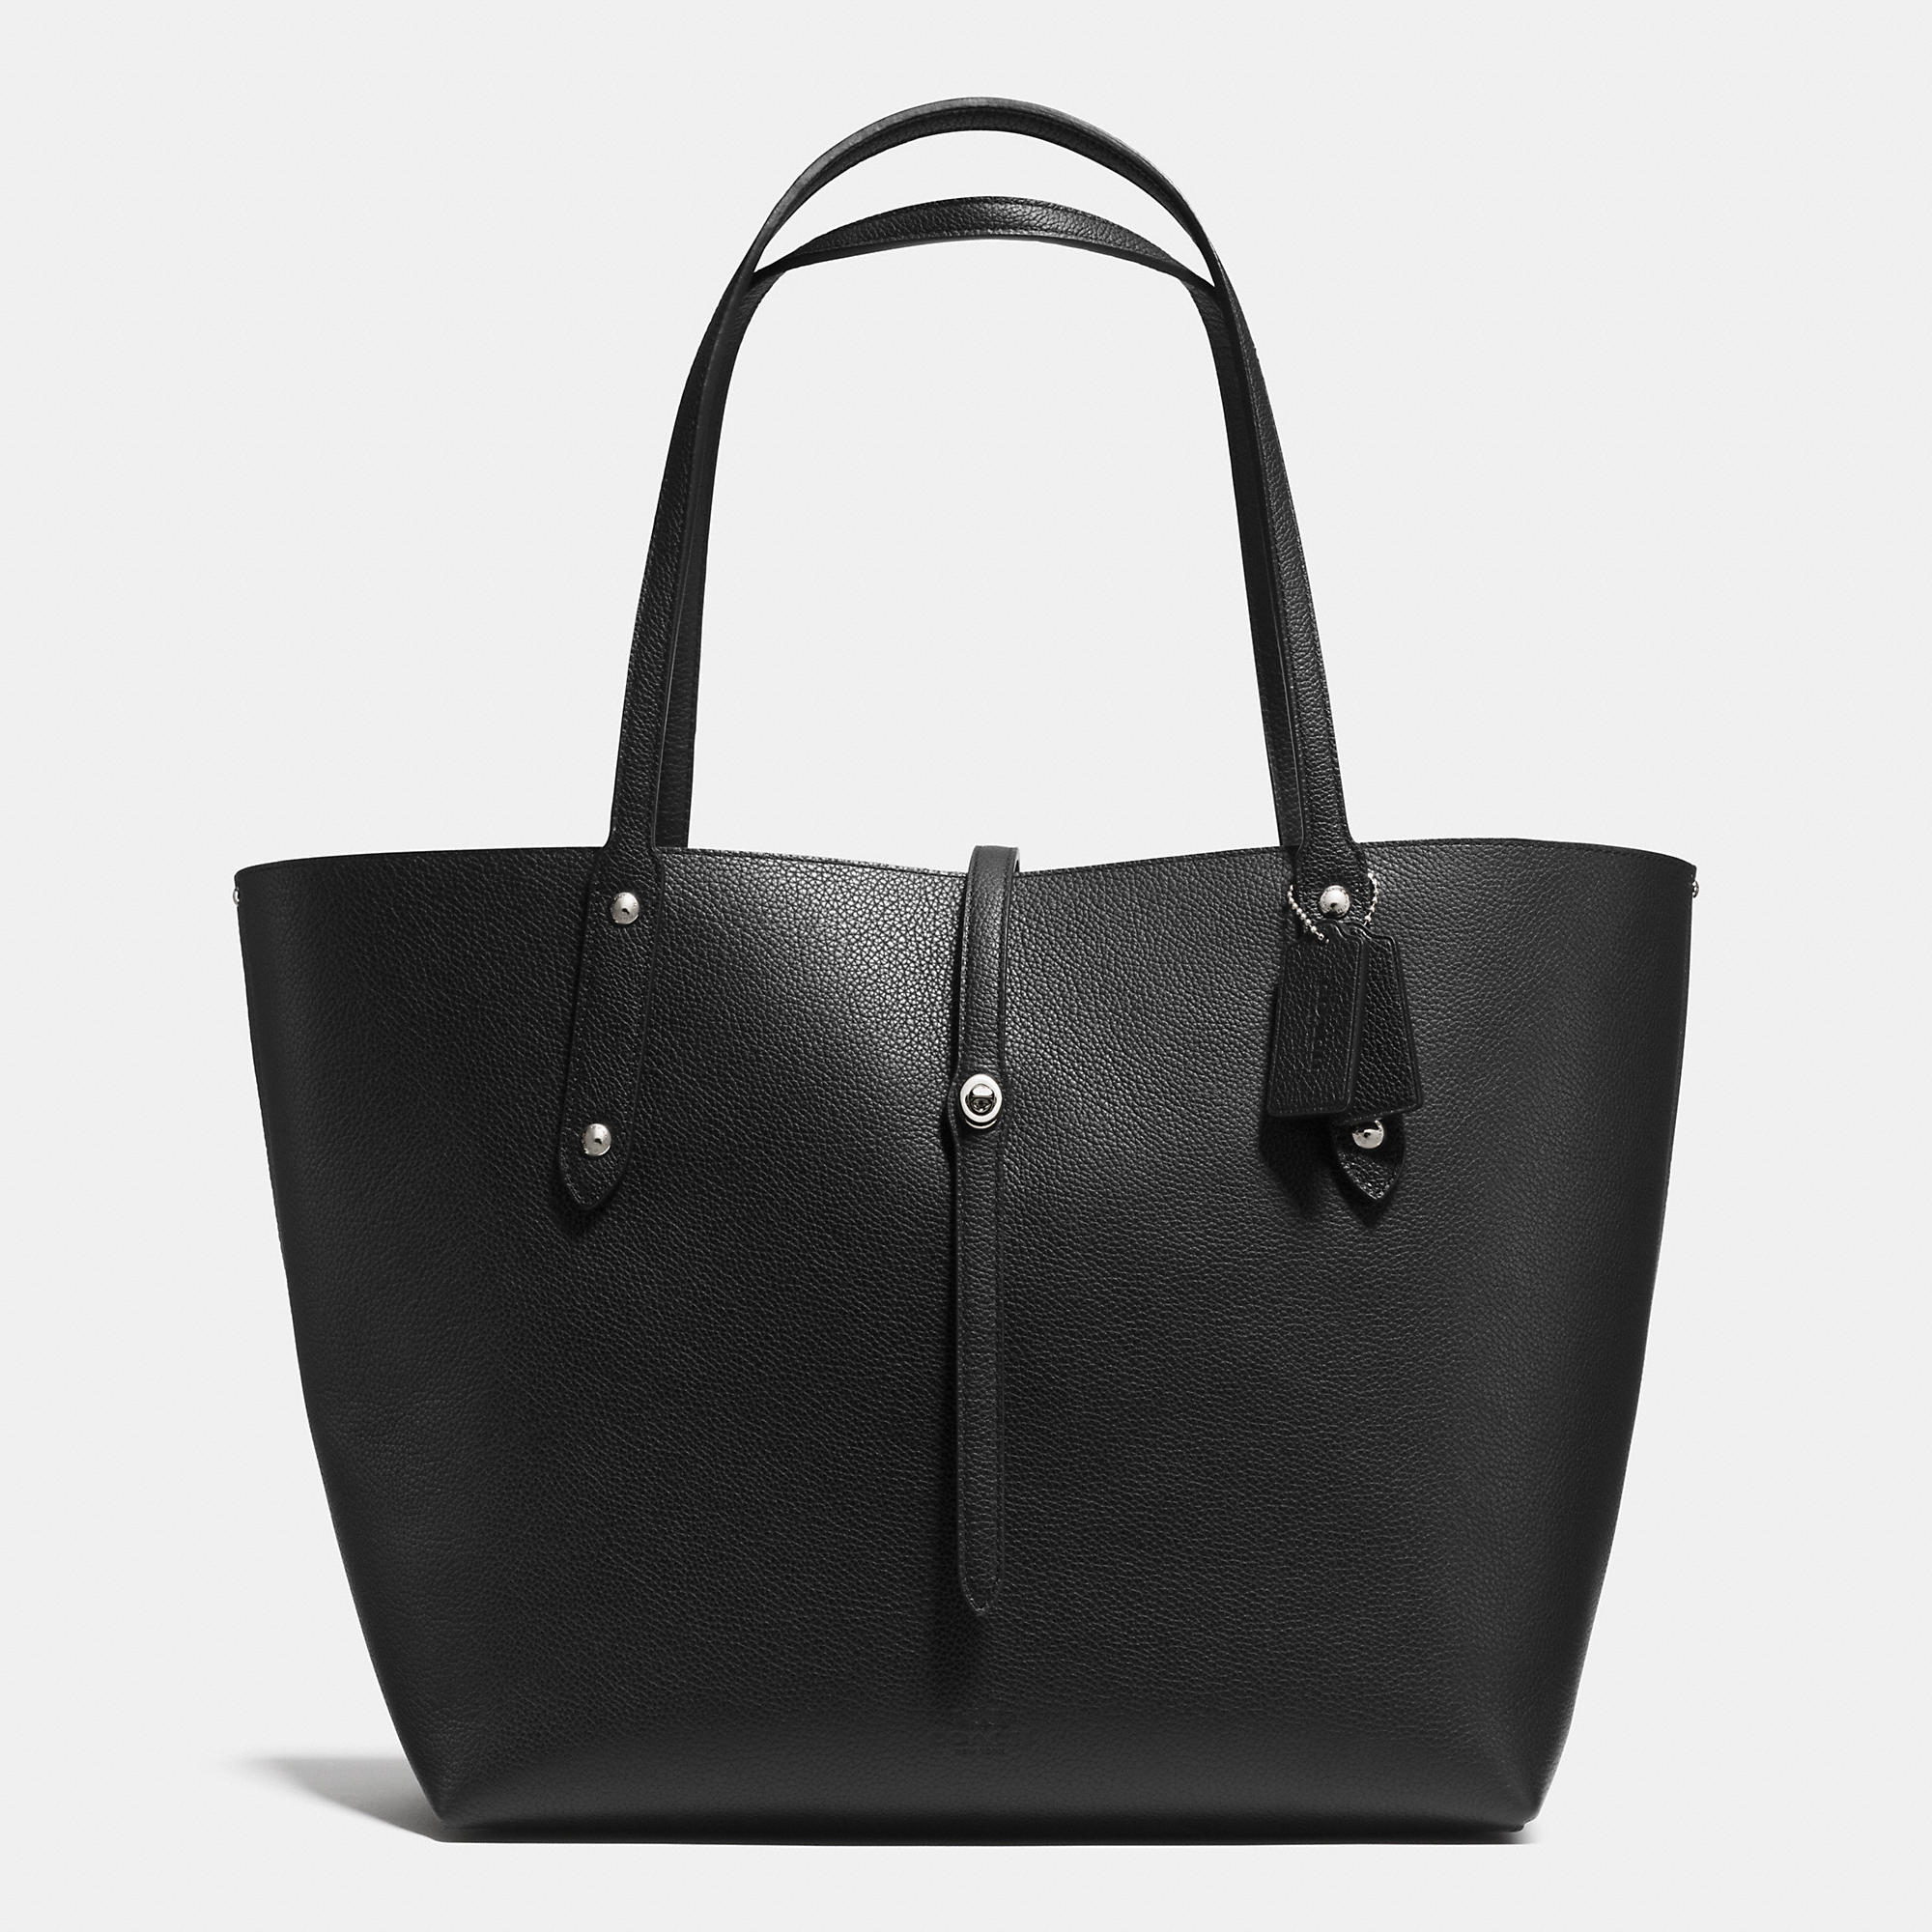 Lyst - COACH Market Tote In Printed Pebble Leather in Black